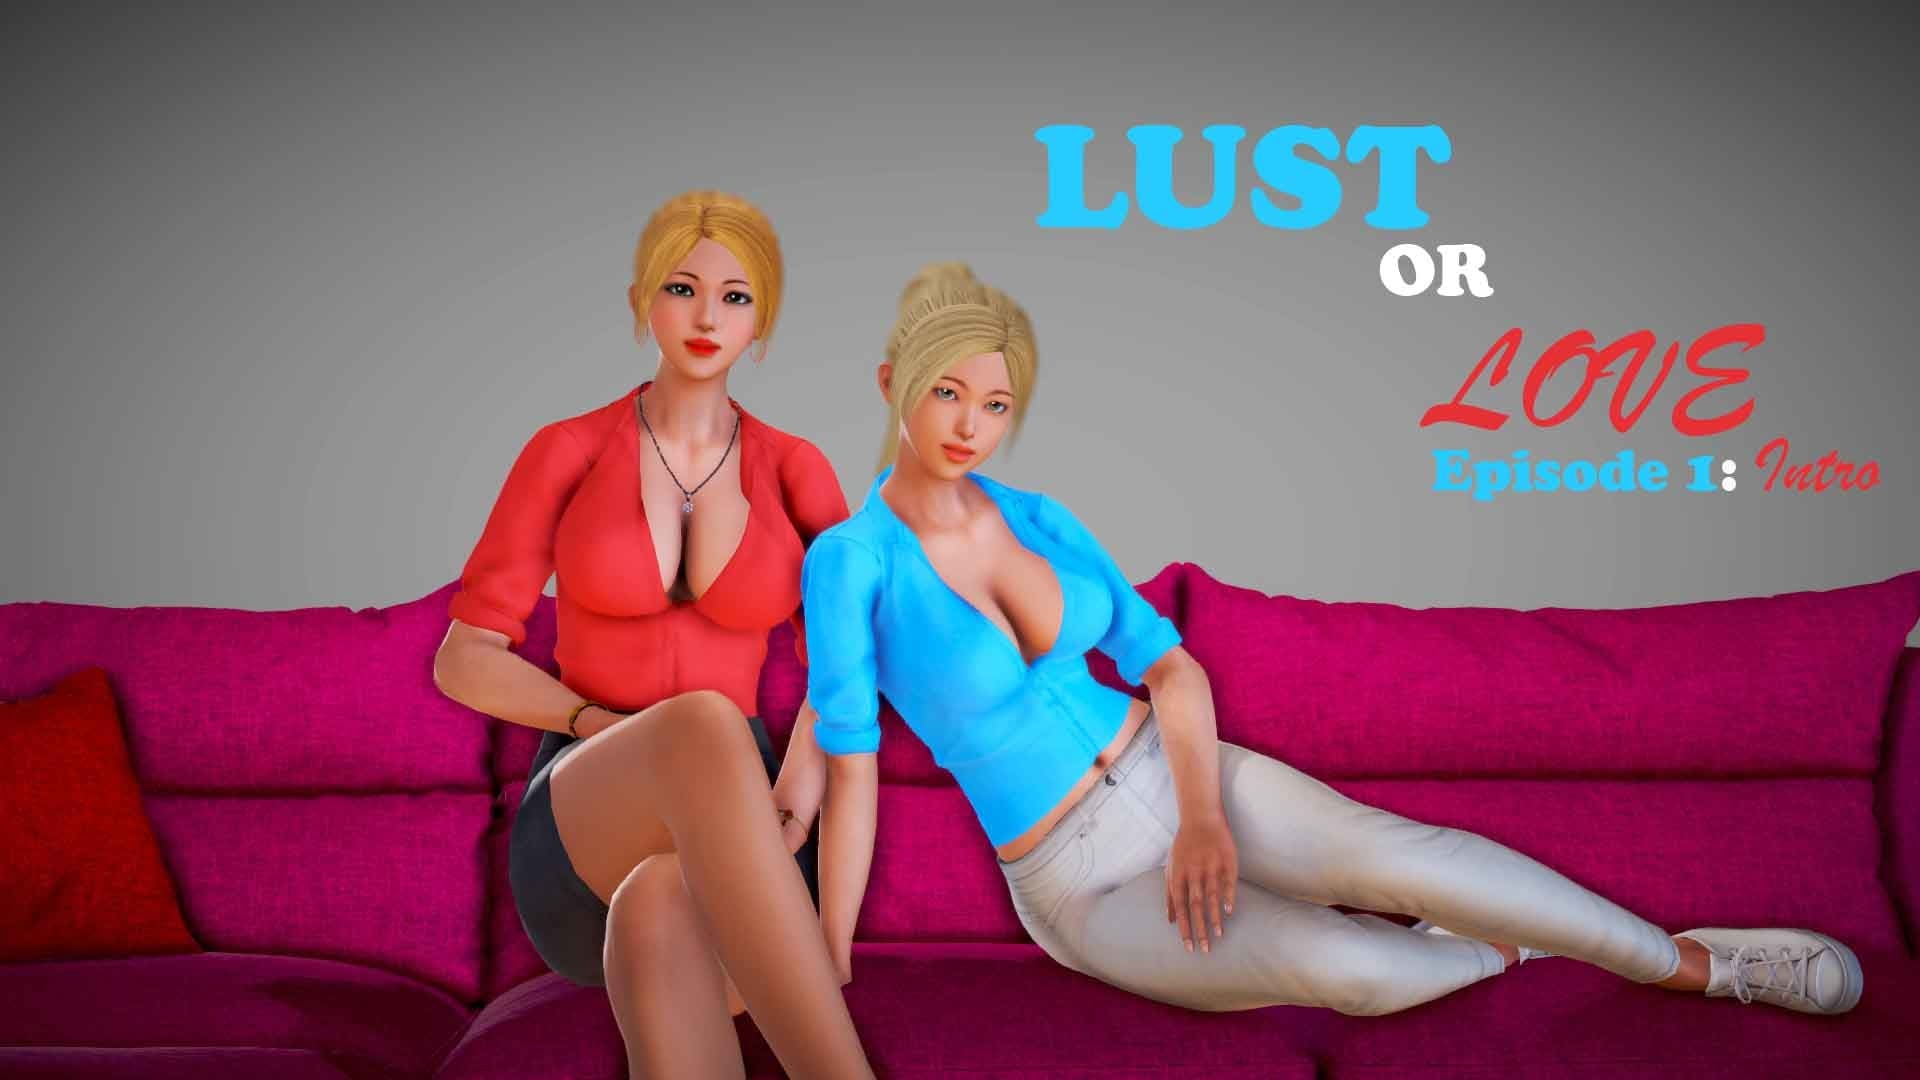 Lust or Love